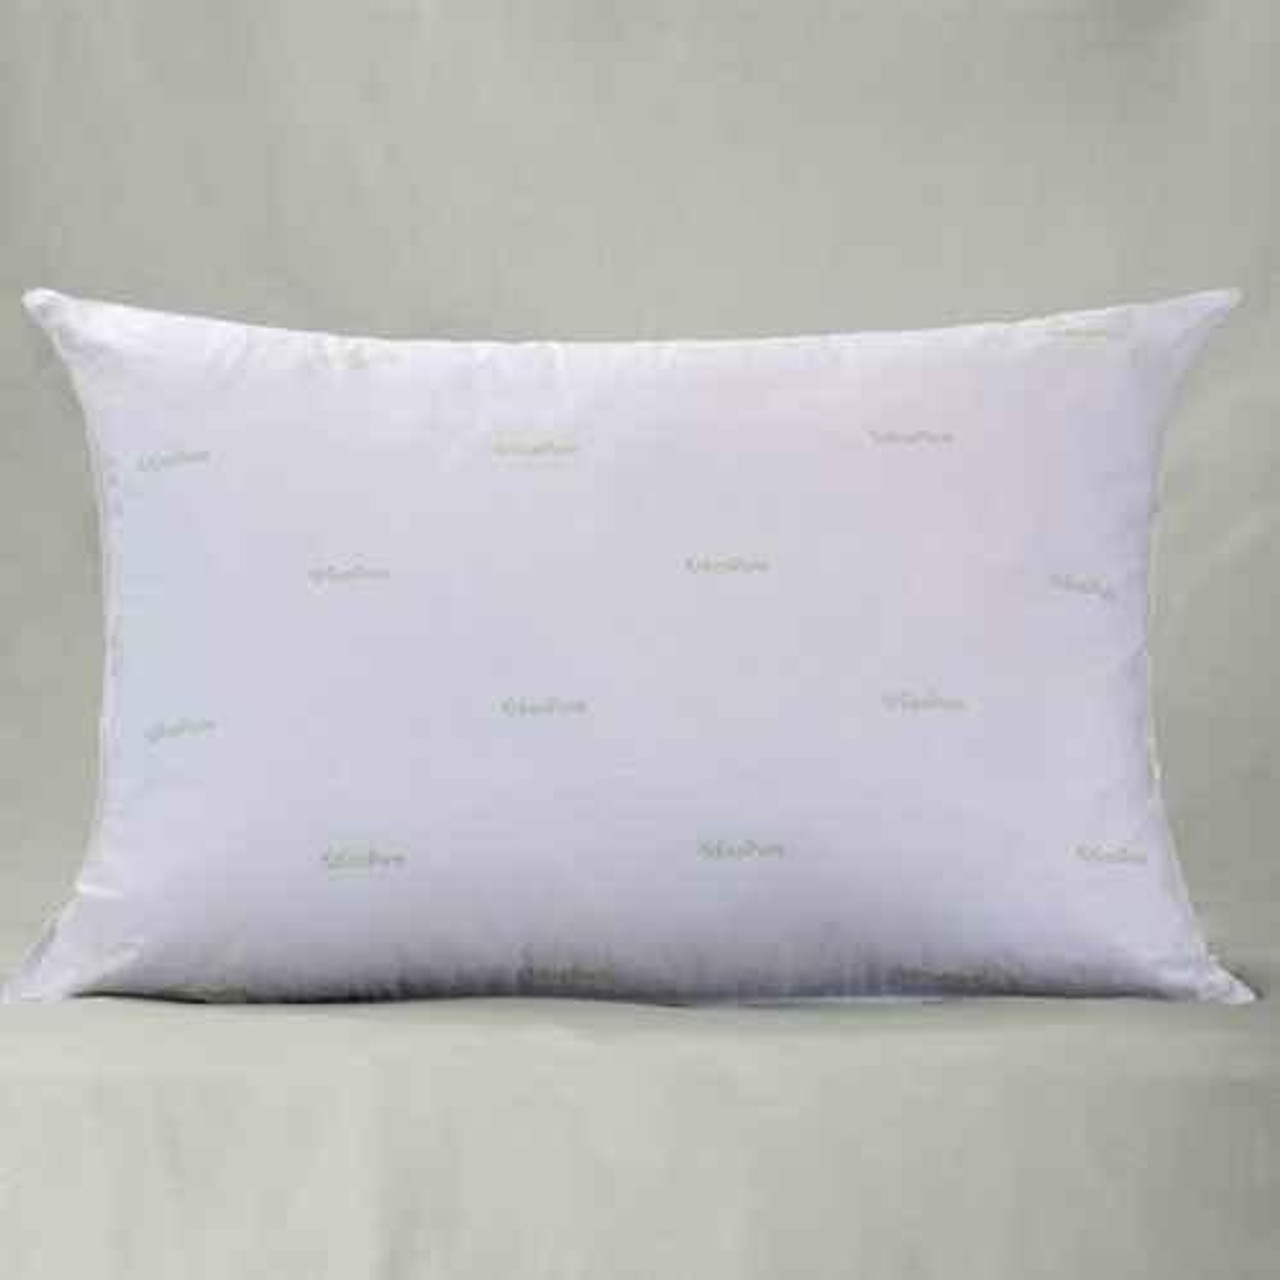 WestPoint/Martex Westpoint or Martex Ecopure or Hotel Pillows 21 Oz Fill or White or 6-10 Per Pack